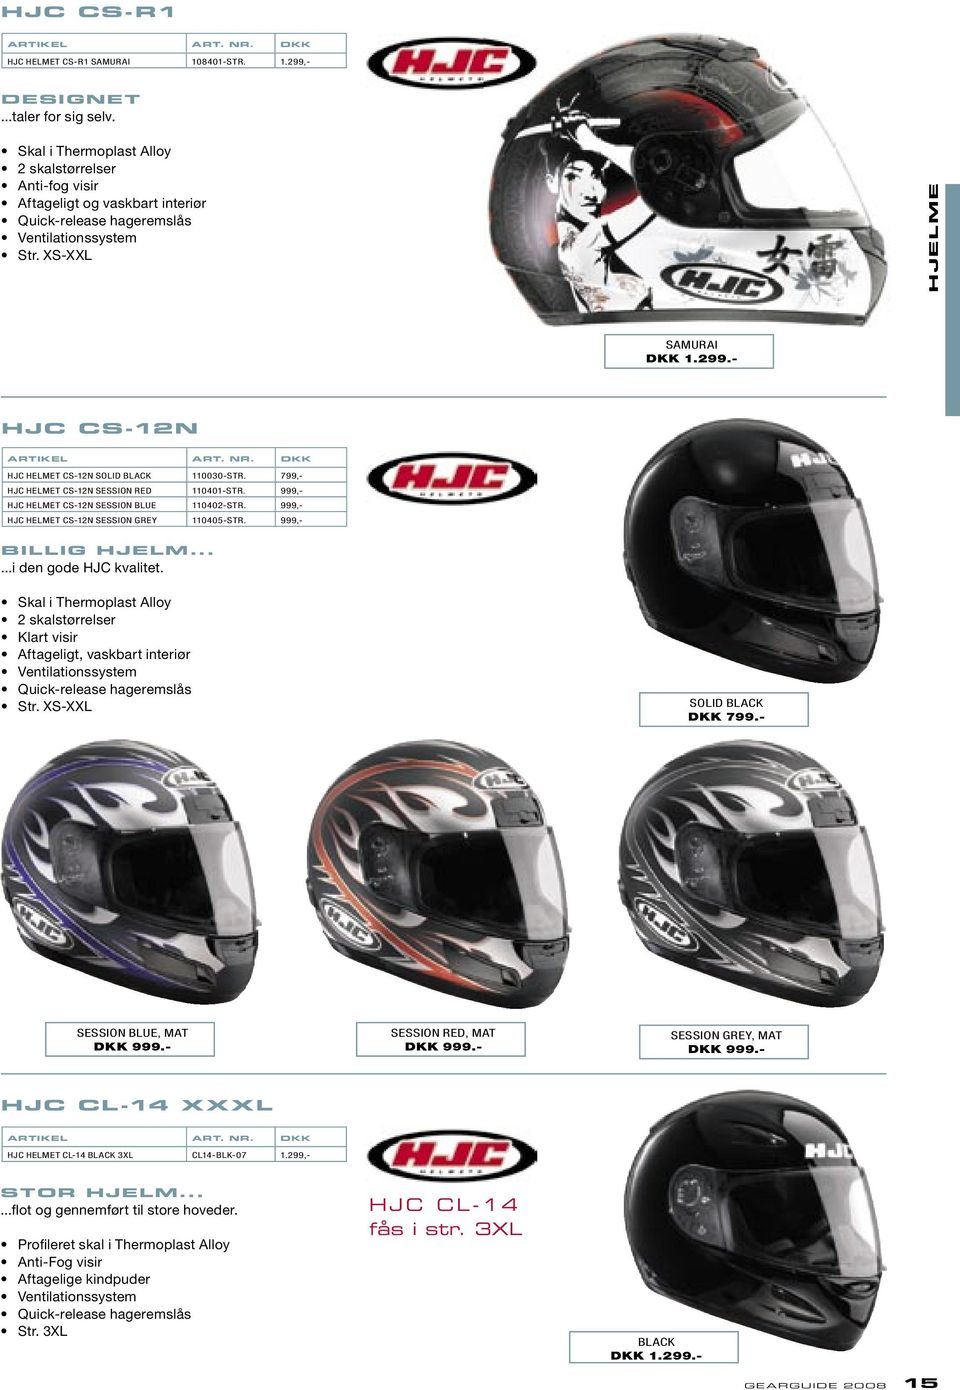 - HJC CS-12N HJC HELMET CS-12N SOLID 110030-STR. 799,- HJC HELMET CS-12N SESSION RED 110401-STR. 999,- HJC HELMET CS-12N SESSION BLUE 110402-STR. 999,- HJC HELMET CS-12N SESSION GREY 110405-STR.